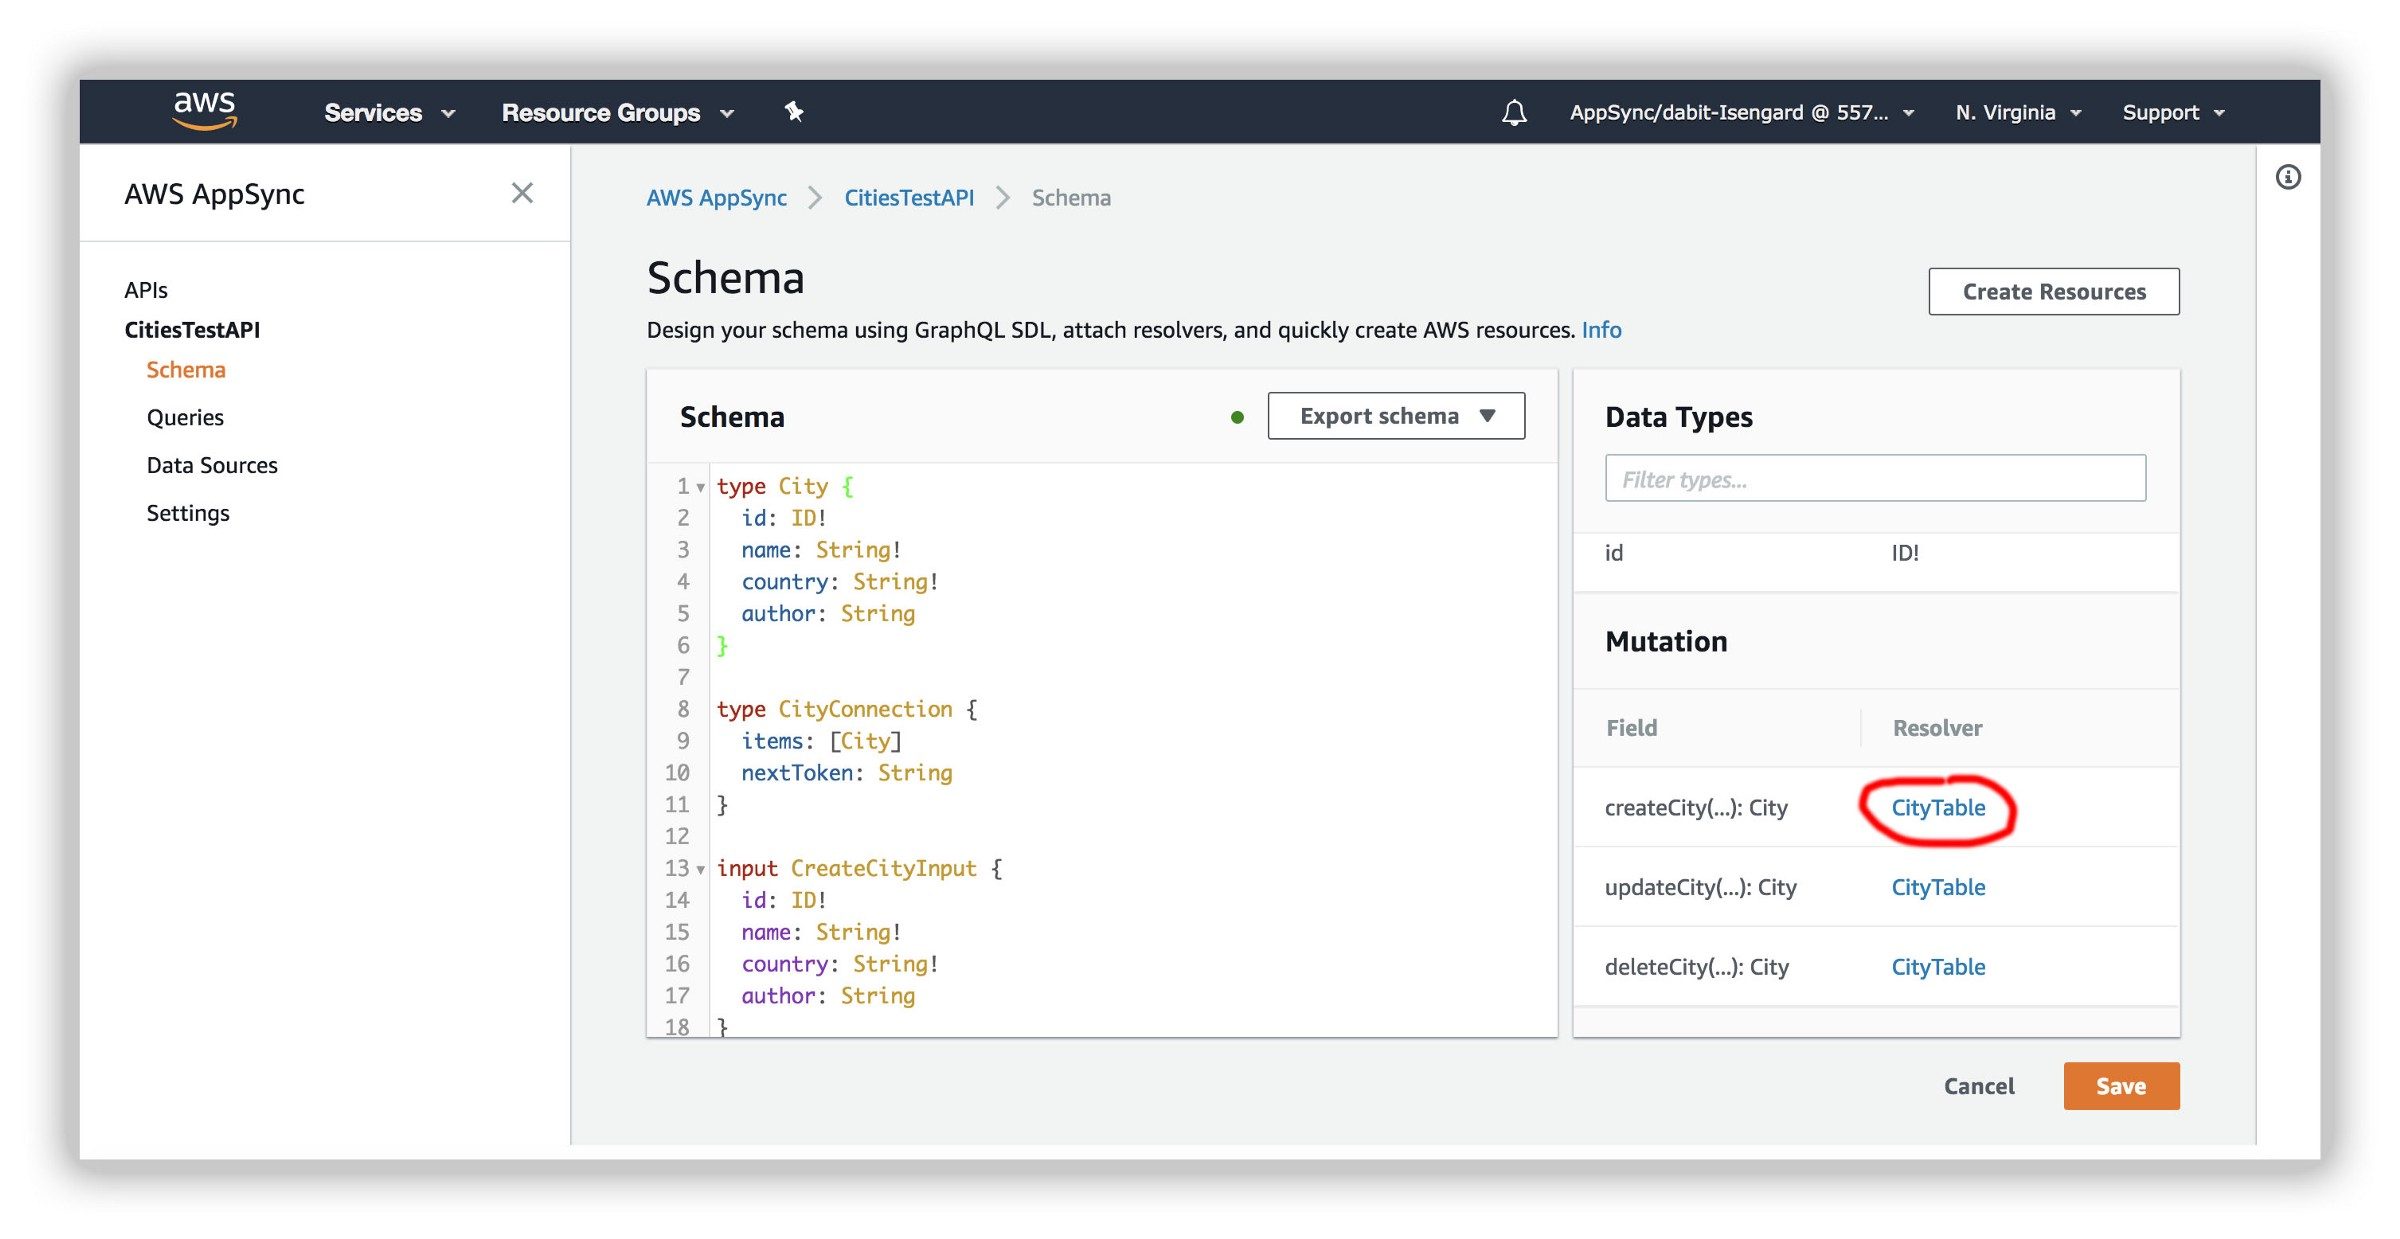 Tackling User Authorization in GraphQL with AWS AppSync - By